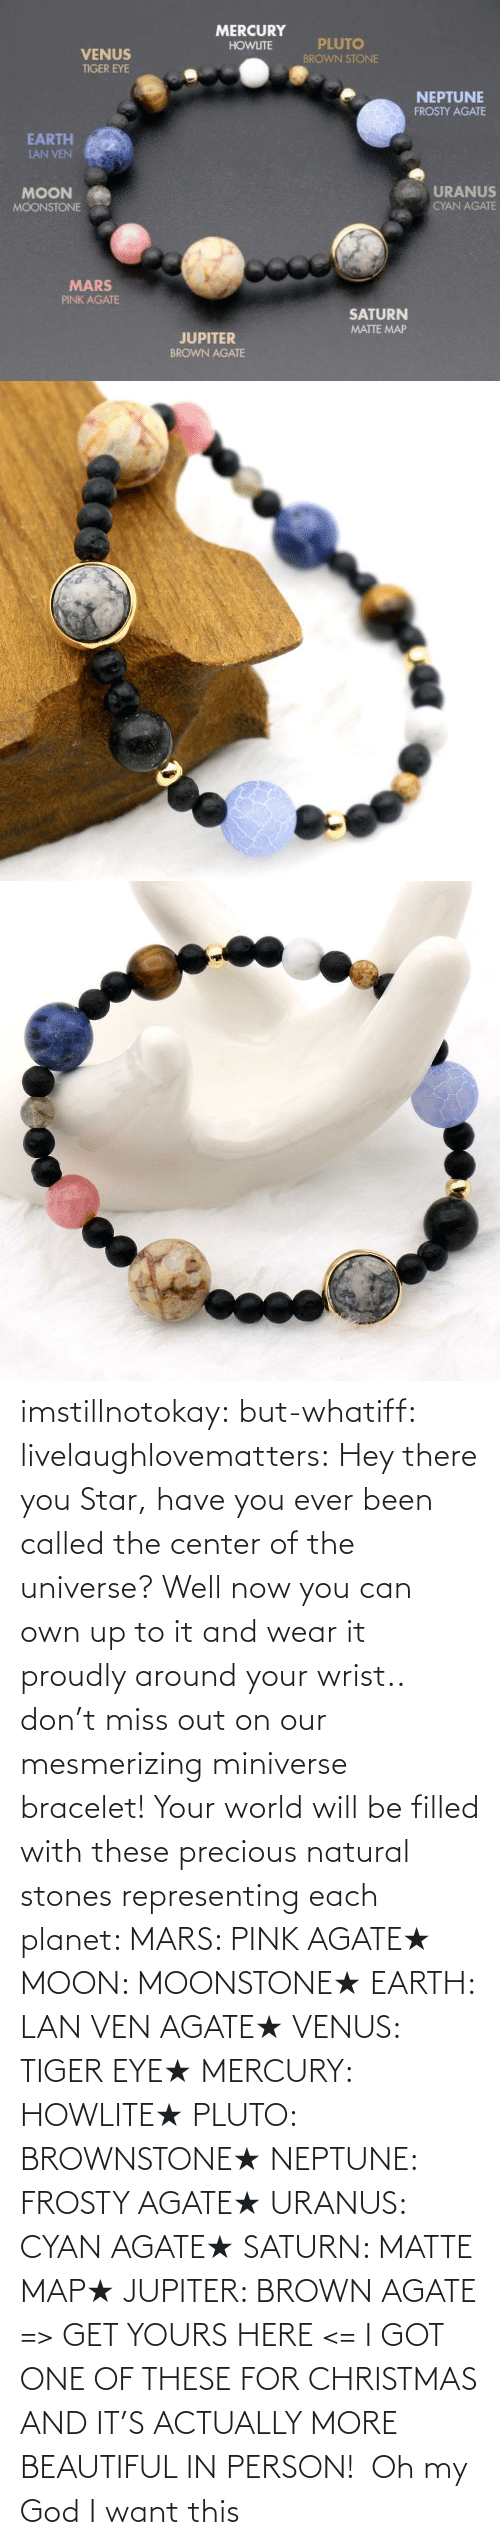 own: imstillnotokay:  but-whatiff: livelaughlovematters:  Hey there you Star, have you ever been called the center of the universe? Well now you can own up to it and wear it proudly around your wrist.. don't miss out on our mesmerizing miniverse bracelet! Your world will be filled with these precious natural stones representing each planet:  MARS: PINK AGATE★ MOON: MOONSTONE★ EARTH: LAN VEN AGATE★ VENUS: TIGER EYE★ MERCURY: HOWLITE★ PLUTO: BROWNSTONE★ NEPTUNE: FROSTY AGATE★ URANUS: CYAN AGATE★ SATURN: MATTE MAP★ JUPITER: BROWN AGATE => GET YOURS HERE <=  I GOT ONE OF THESE FOR CHRISTMAS AND IT'S ACTUALLY MORE BEAUTIFUL IN PERSON!     Oh my God I want this